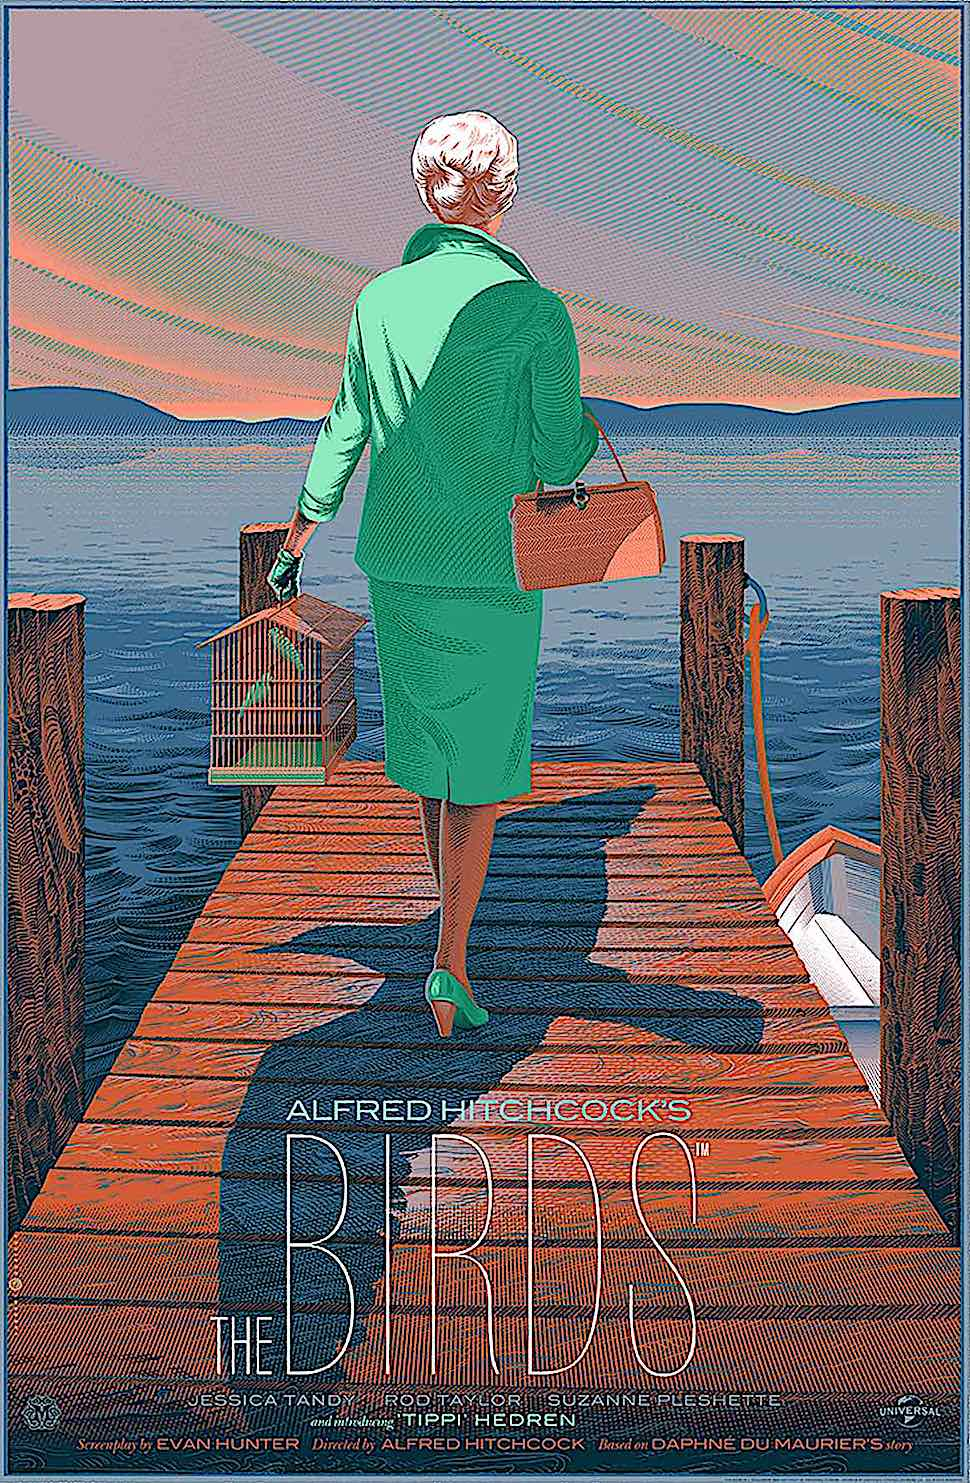 a Laurent Durieux poster for Alfred Hitchcock's The Birds, a woman walking off a dock